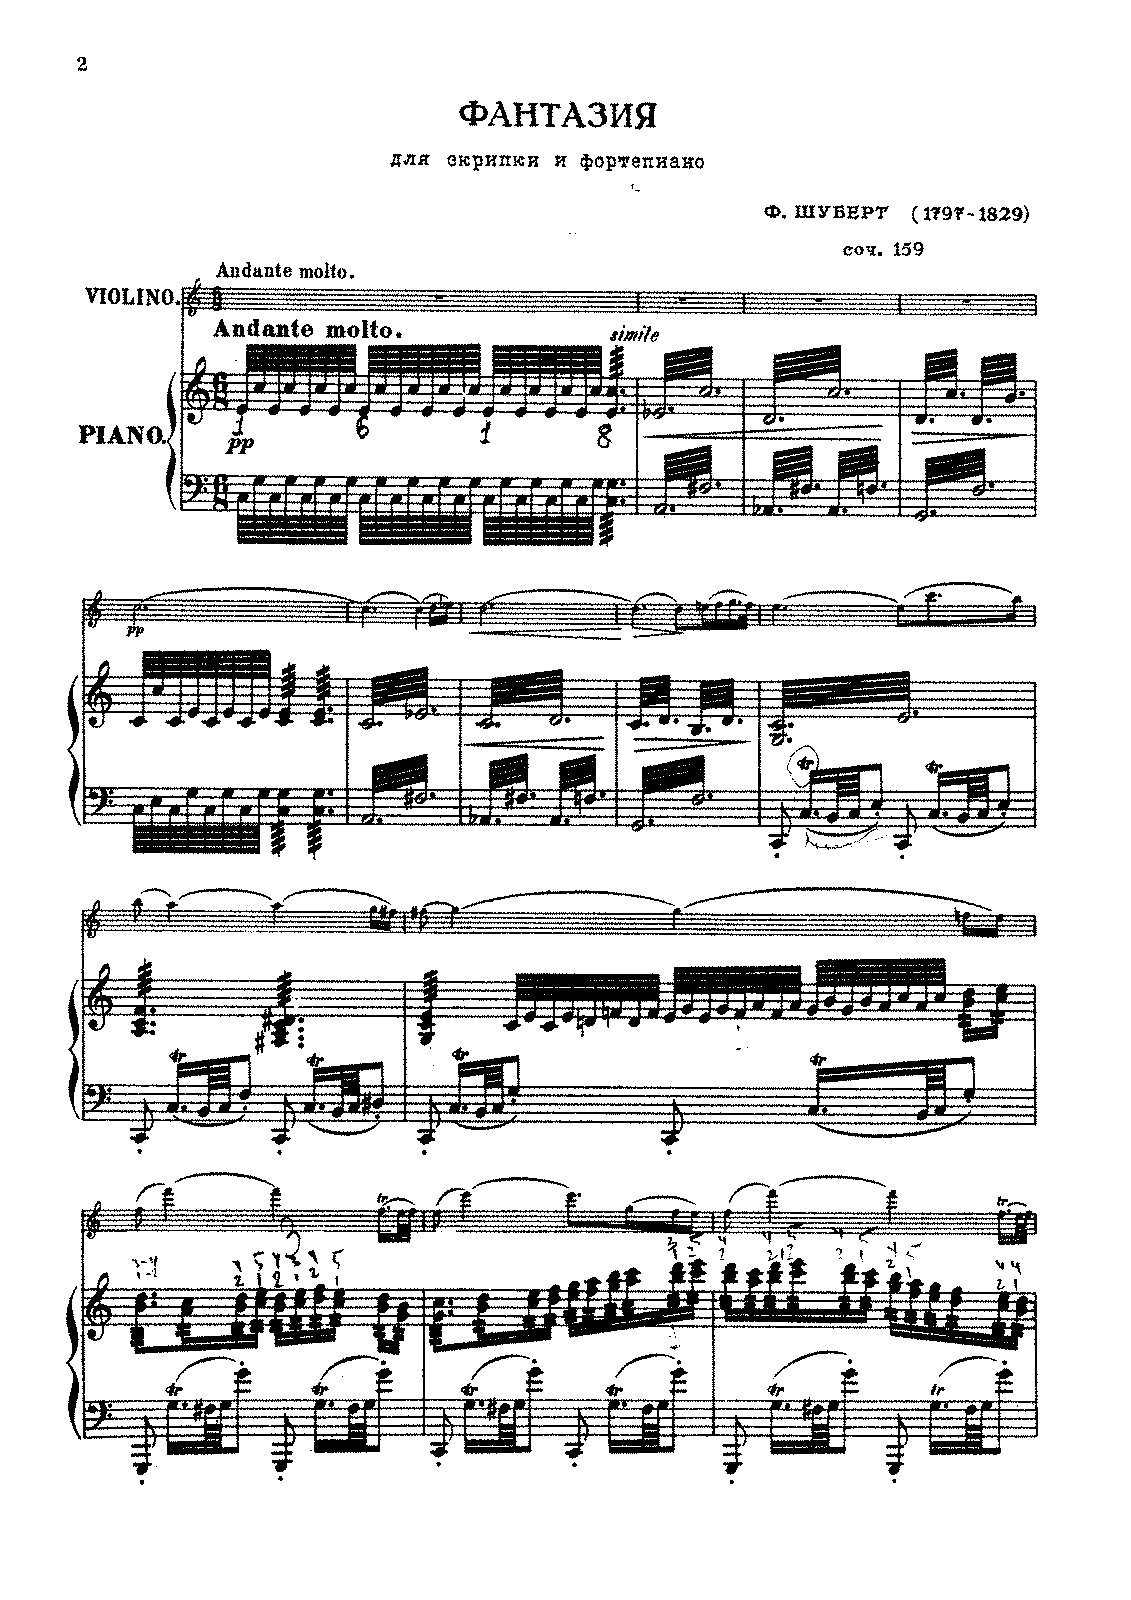 D.934 - Fantasia in C for piano and violin.pdf